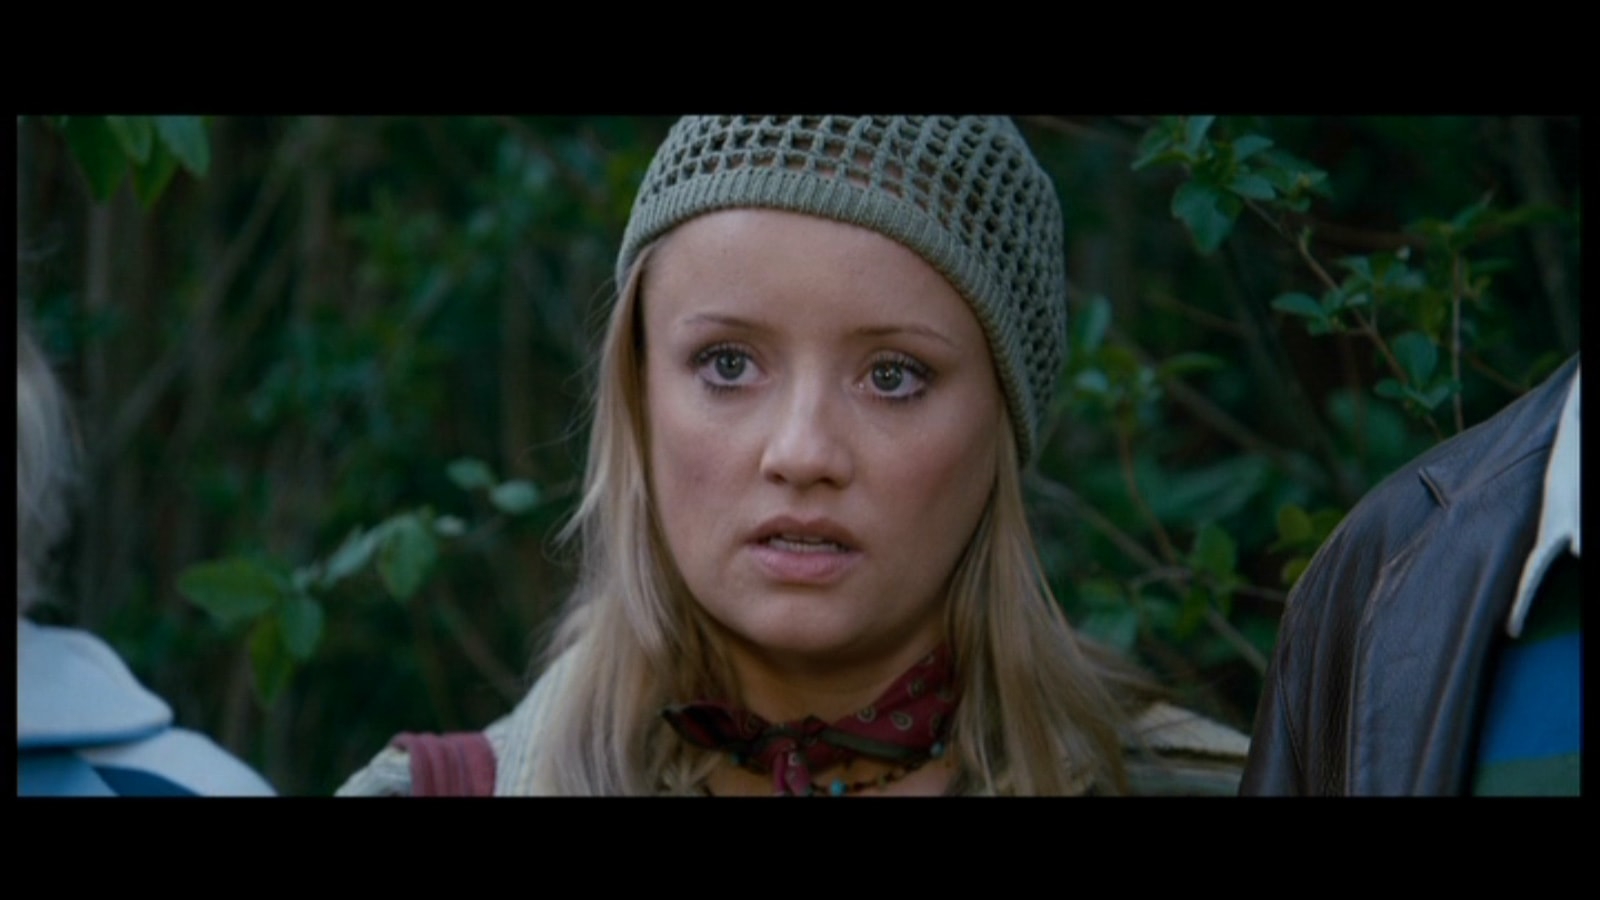 Lucy Davis HQ wallpapers